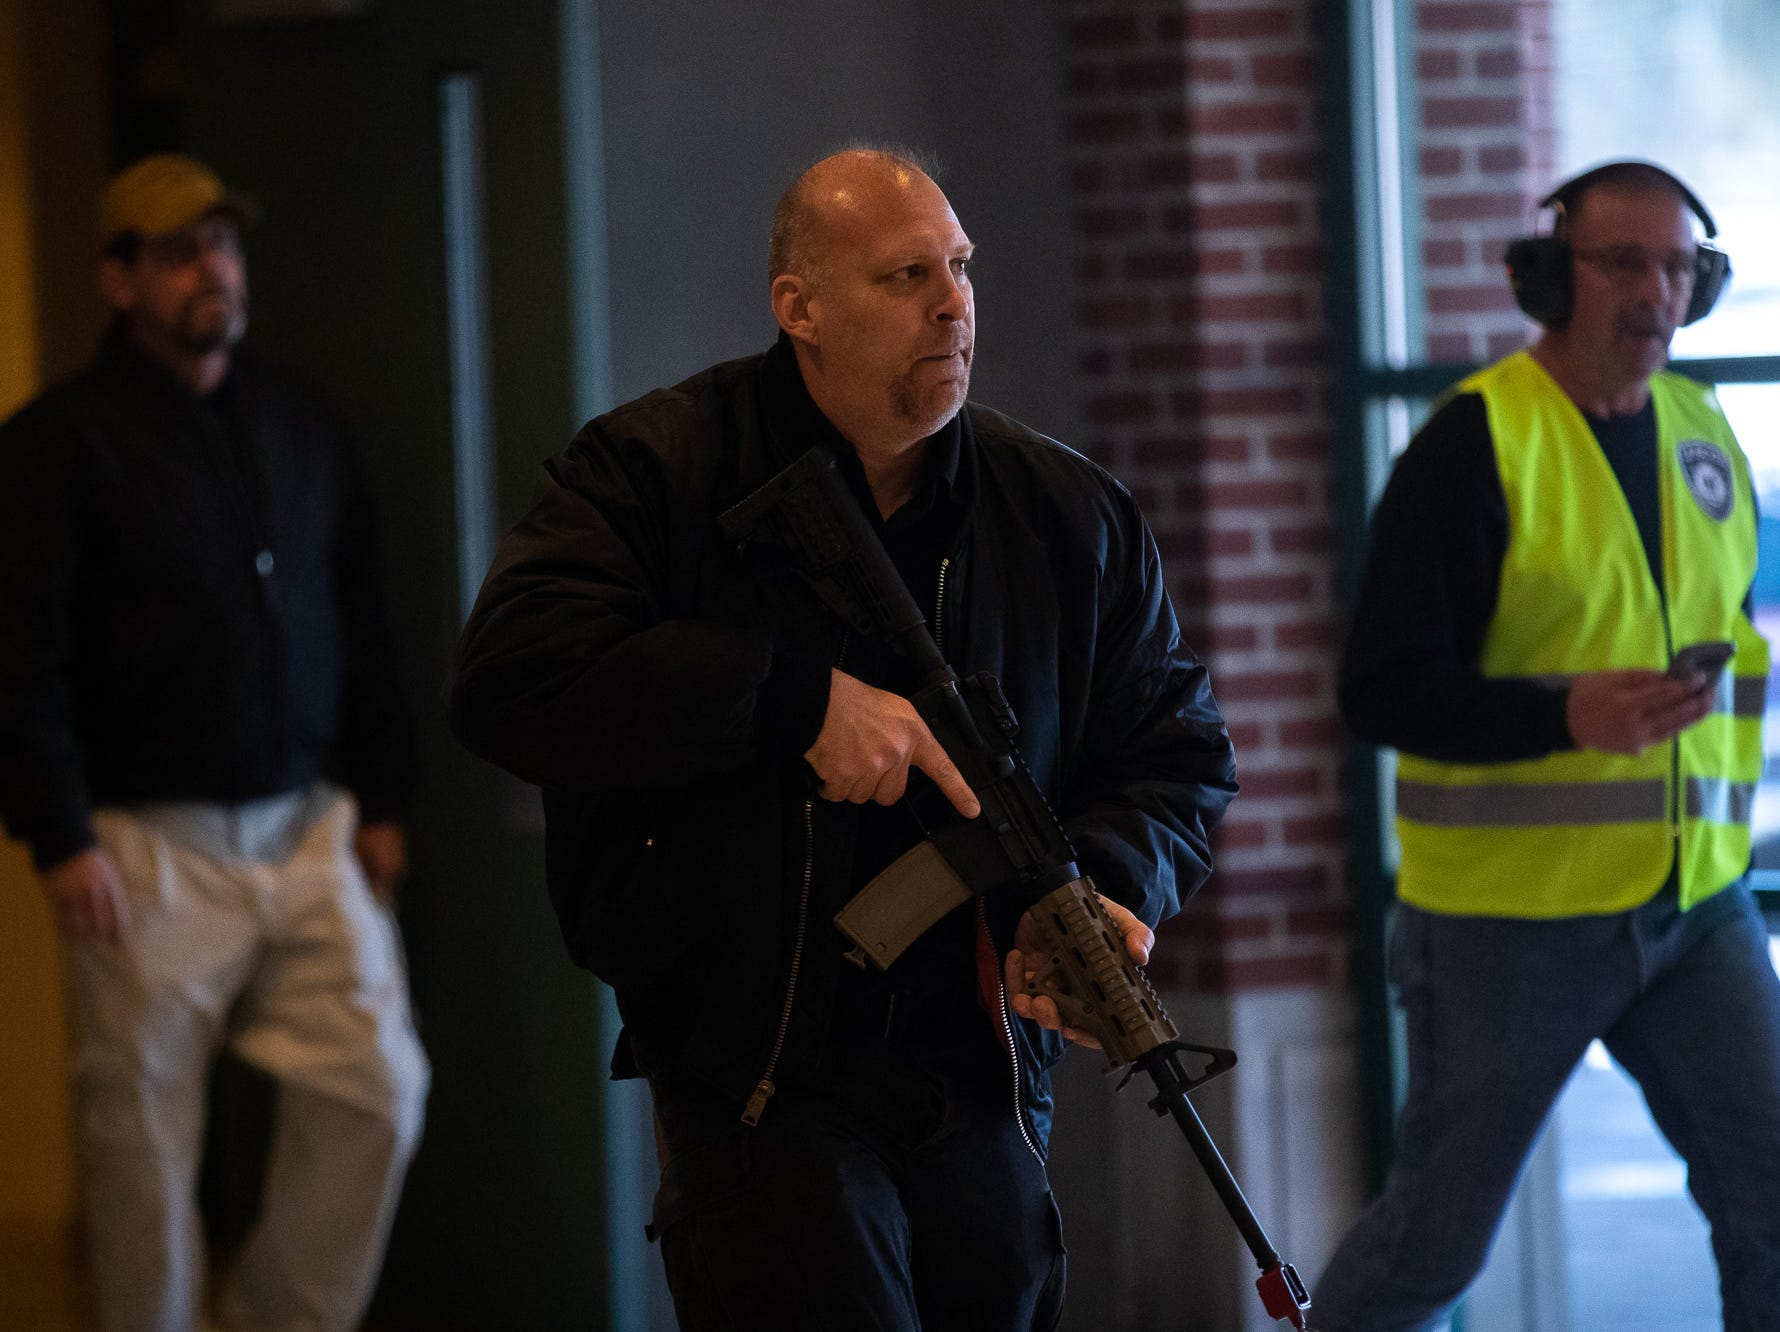 A man portrays an active shooter while taking part in an active shooter drill at South Western High School, Monday, Jan. 21, 2019, in Penn Township. The drill simulated multiple scenarios involving an active shooter, allowing school security and local law enforcement agencies a hands-on opportunity to drill on engaging an active shooter while also giving school staff experience with how real world scenarios could unfold.